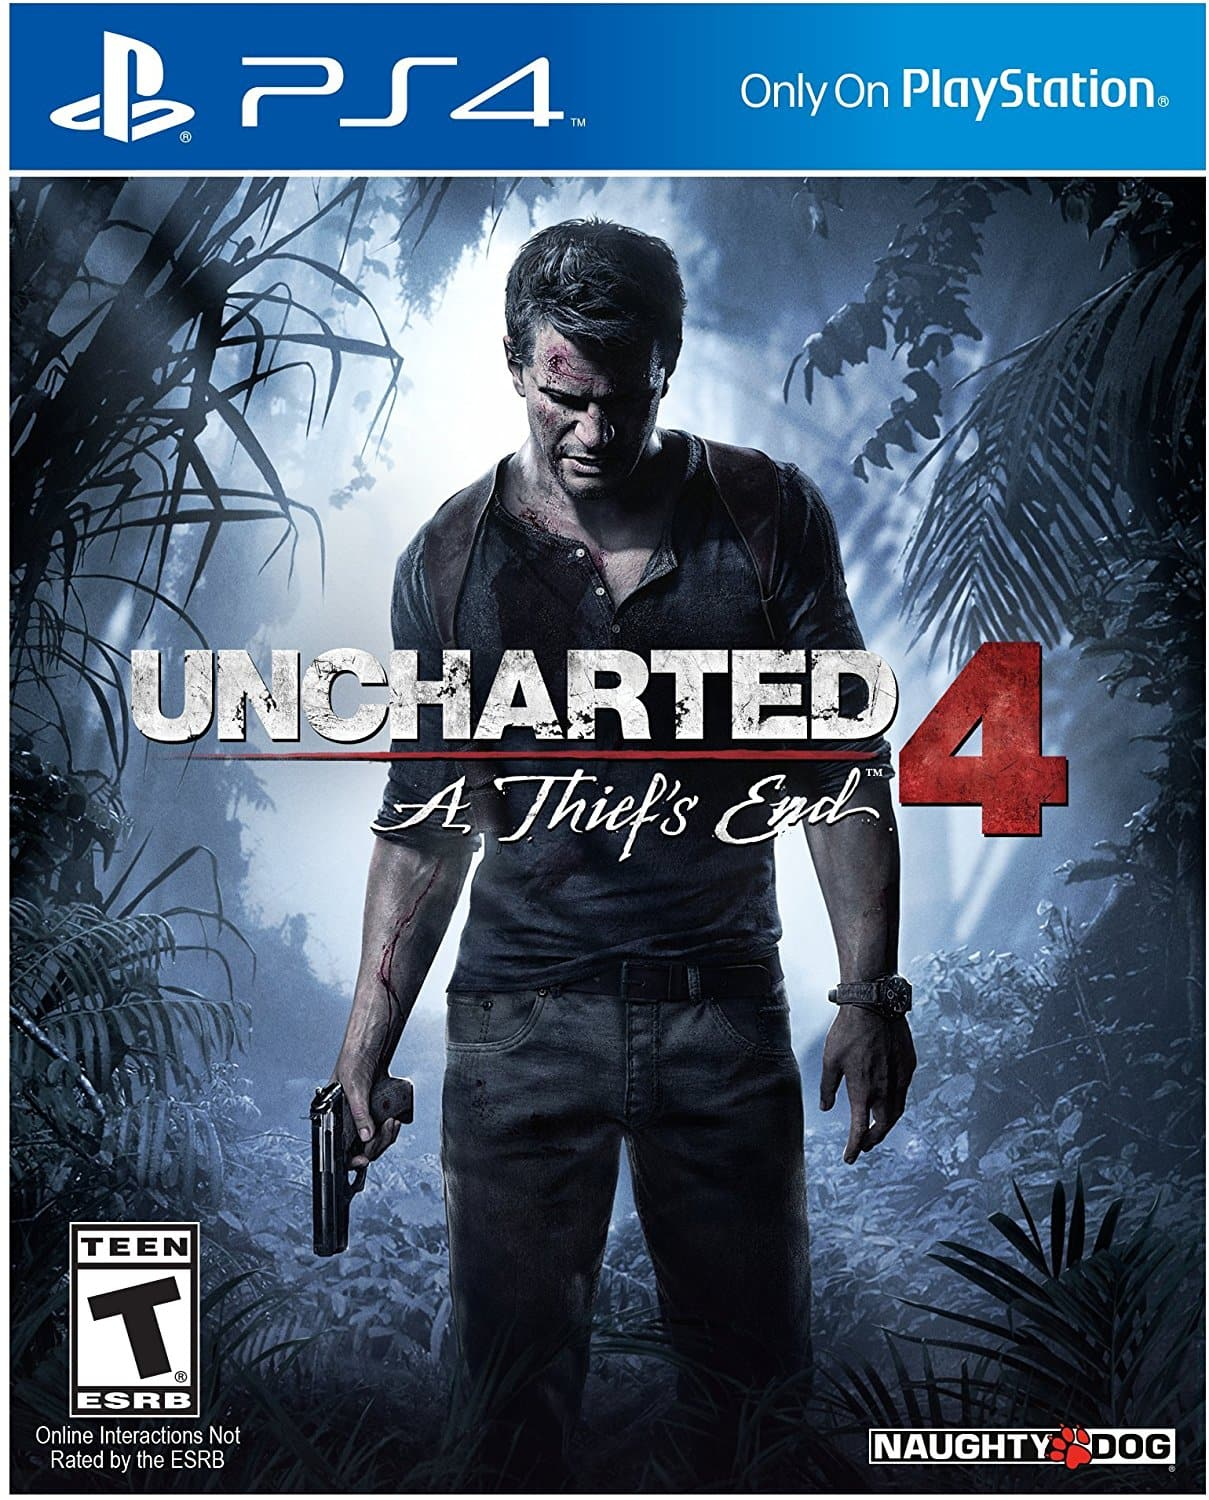 Uncharted 4: A Thief's End (PlayStation 4) $19.99